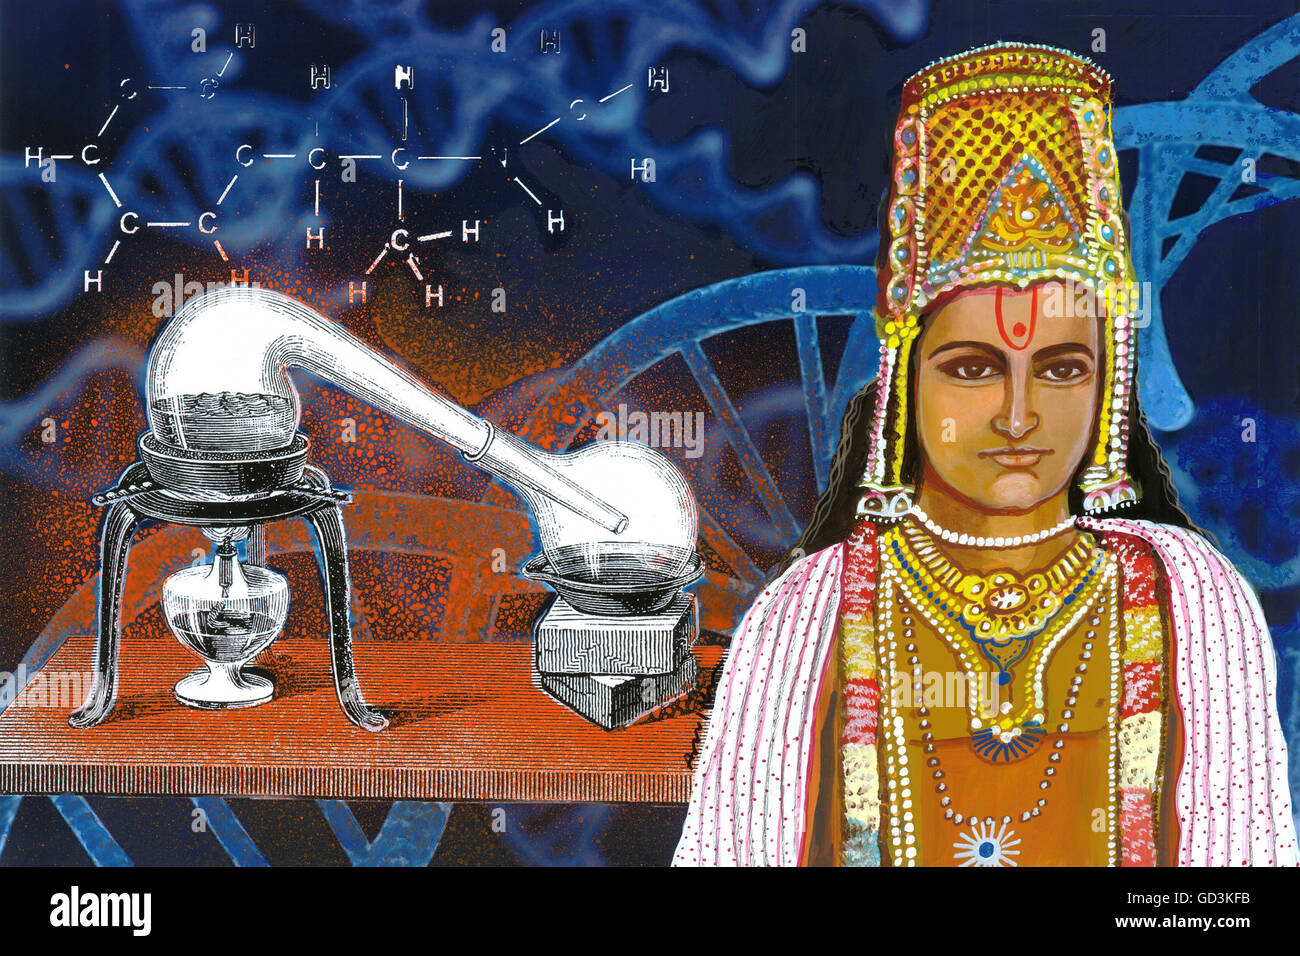 Nagarjuna 100 ce wizard of chemical science painting, india, asia - Stock Image